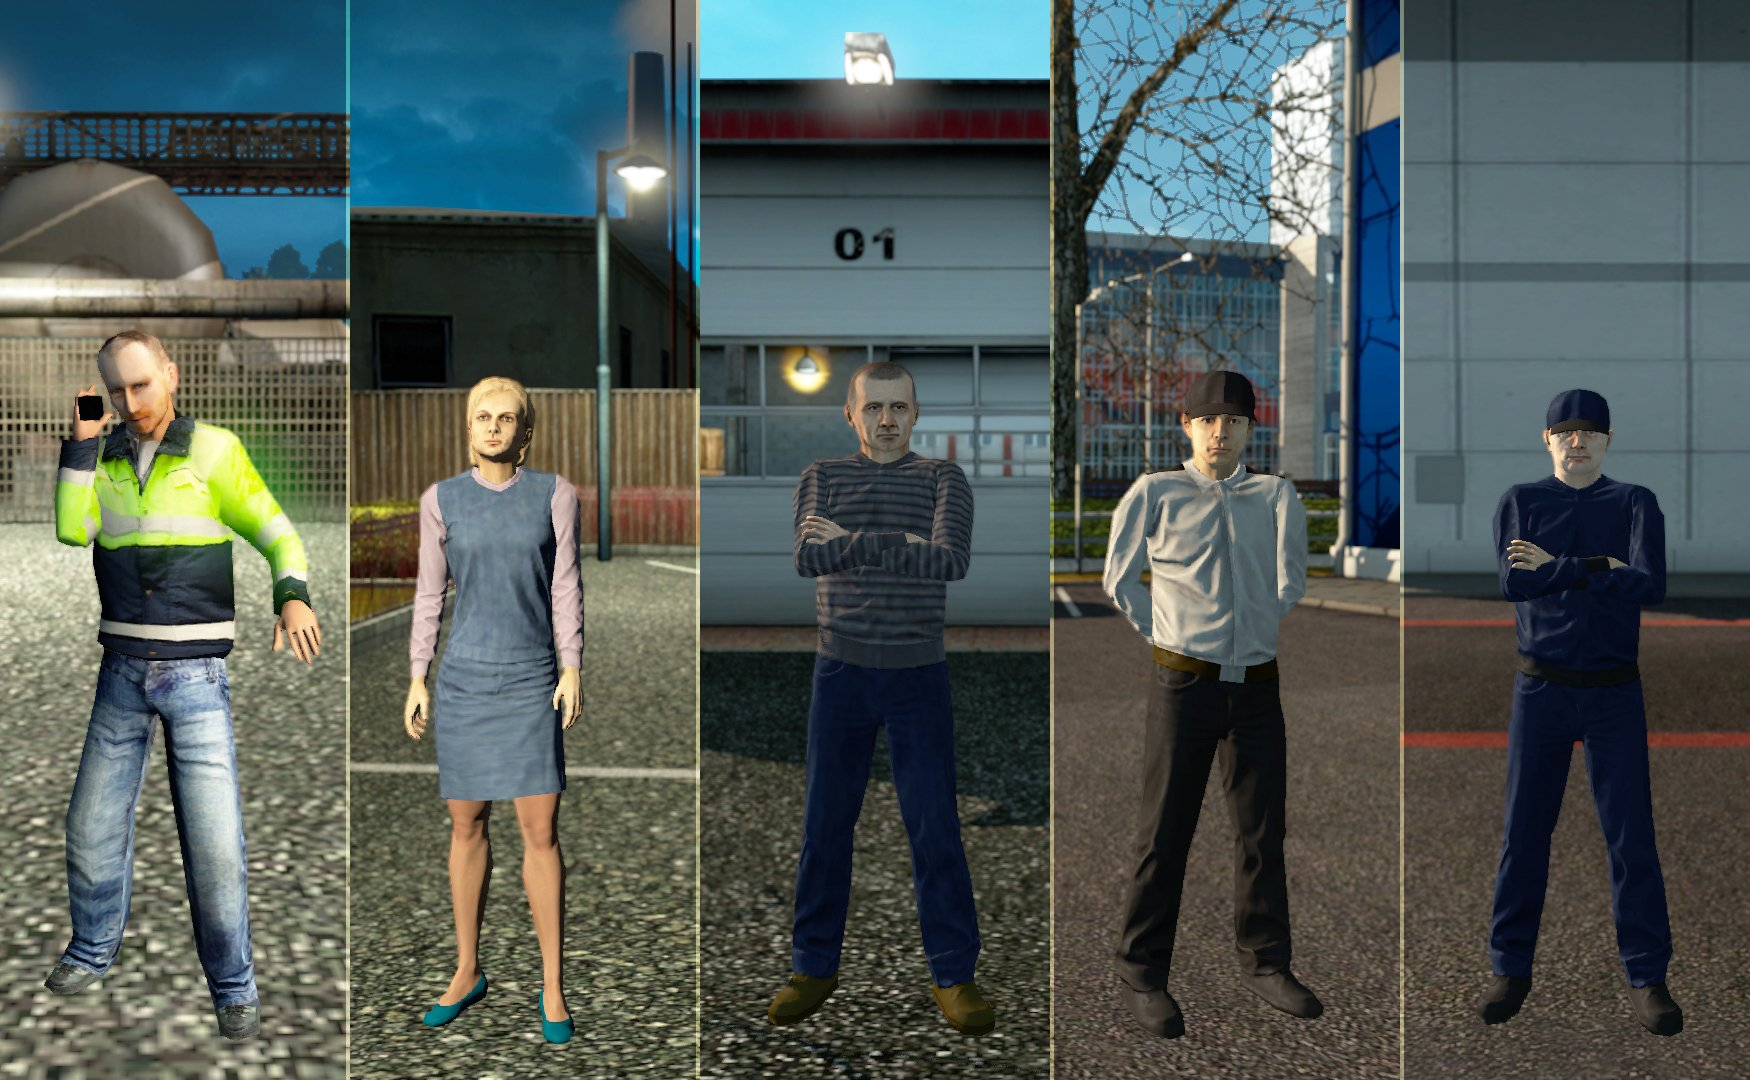 All the service staff v1.4